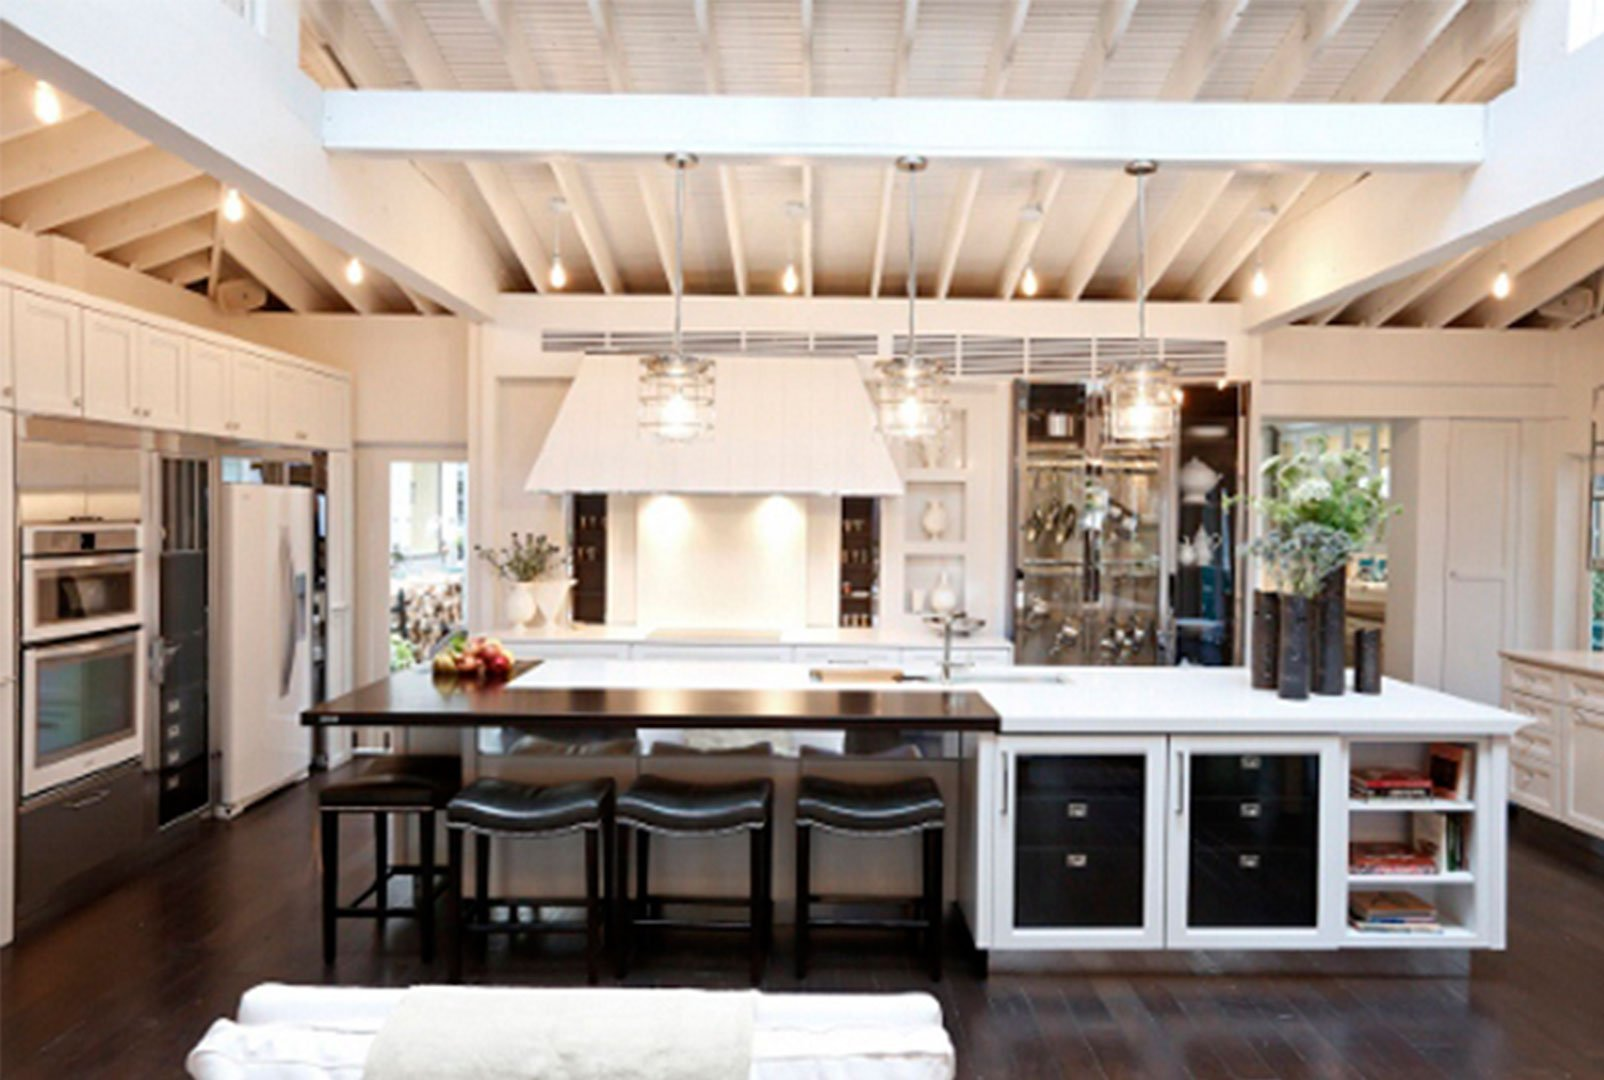 ... Trends-for-Kitchen-Design-Ideas-2014 waterfall1